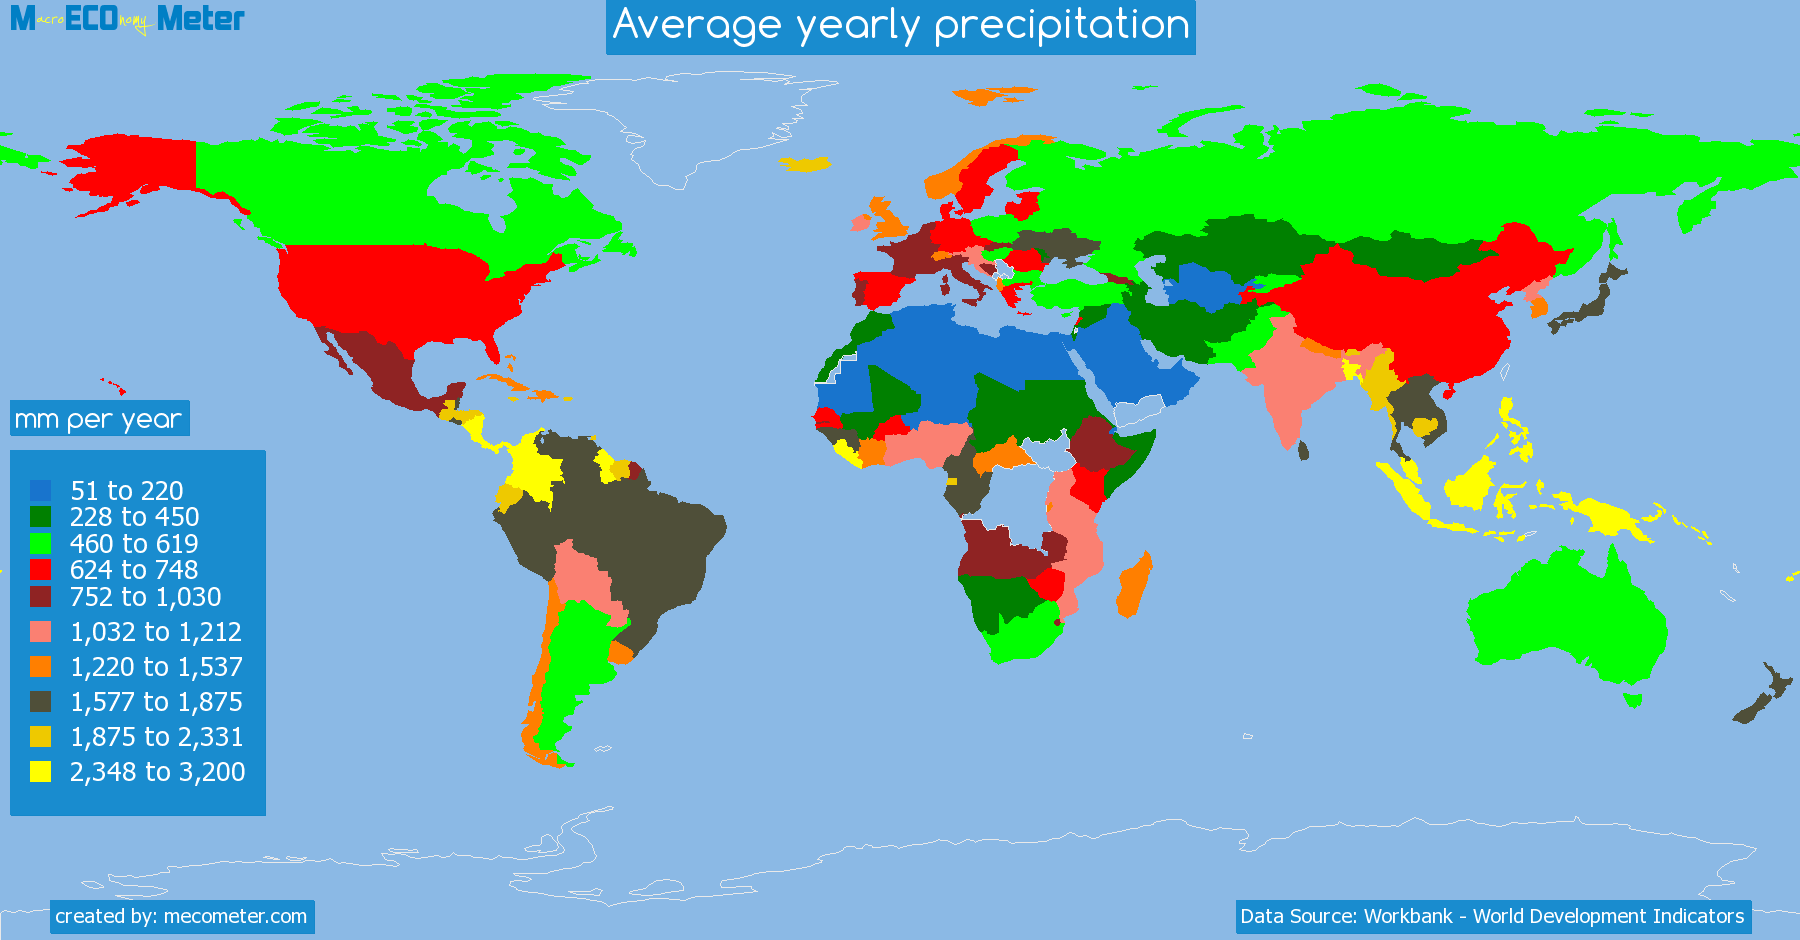 list of countries by Average yearly precipitation